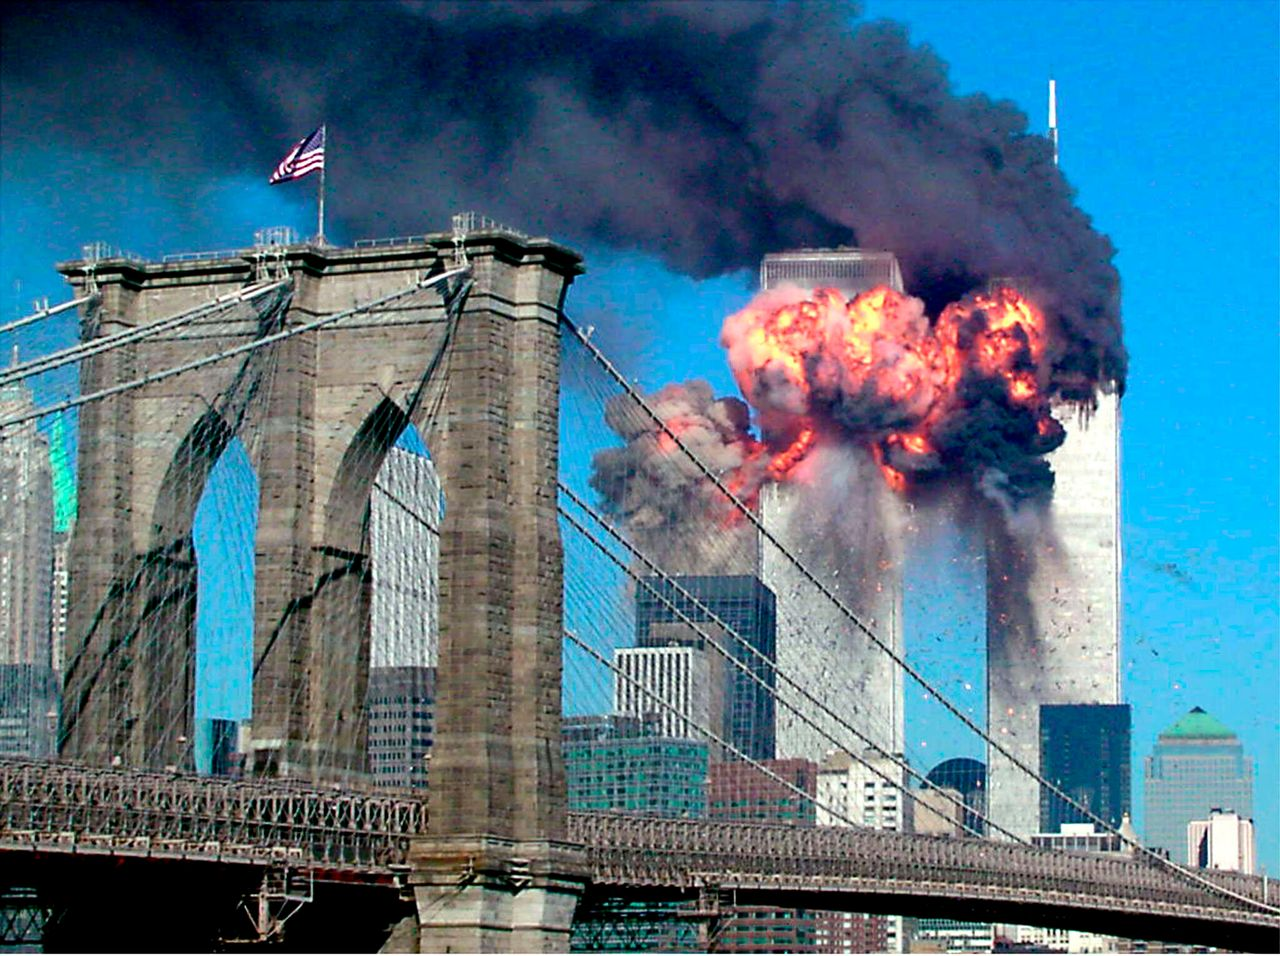 The second tower of the World Trade Center explodes into flames after being hit by an airplane in New York on Sept. 11, 2001.